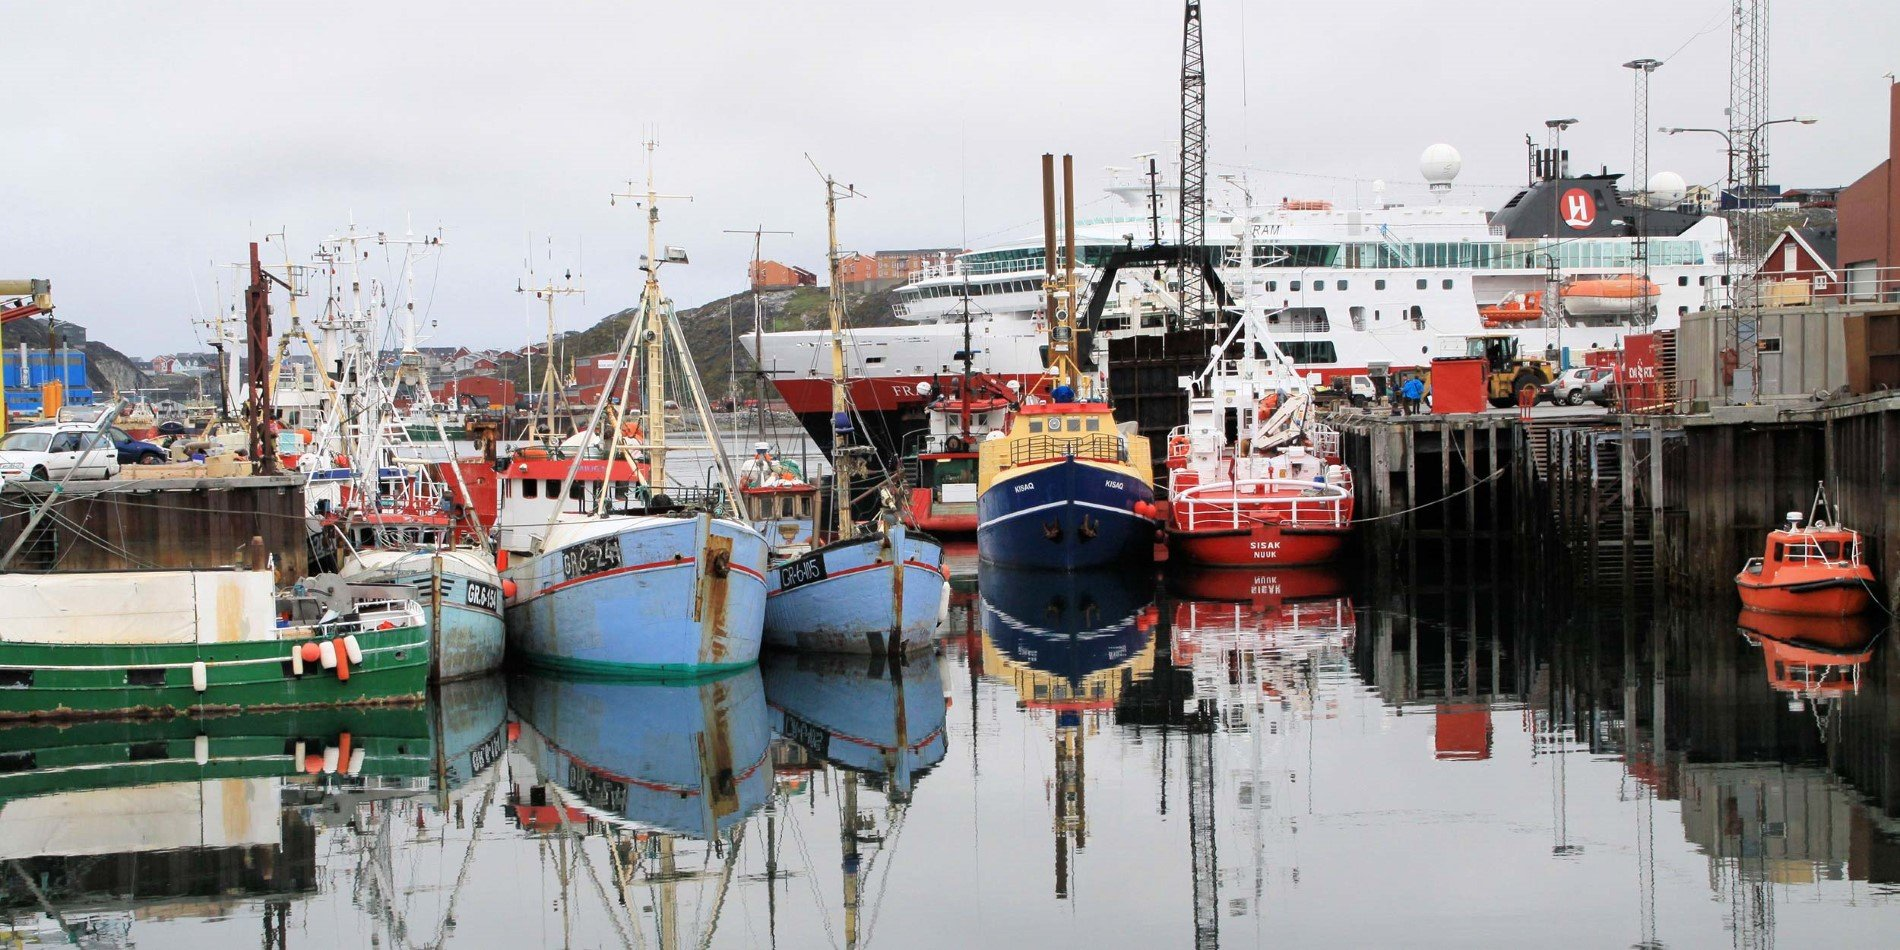 Hurtigruten in Nuuk harbour with fishing boats